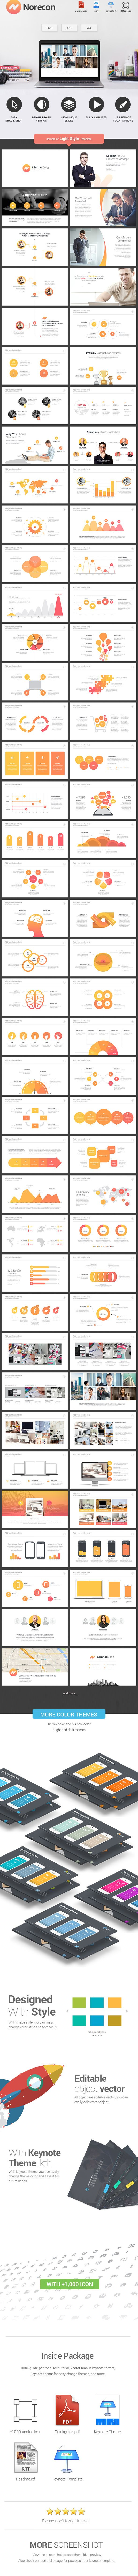 Norecon - Fresh Keynote Template #template #slidewerk #impression • Click here to download ! http://graphicriver.net/item/norecon-fresh-keynote-template/16055268?ref=pxcr